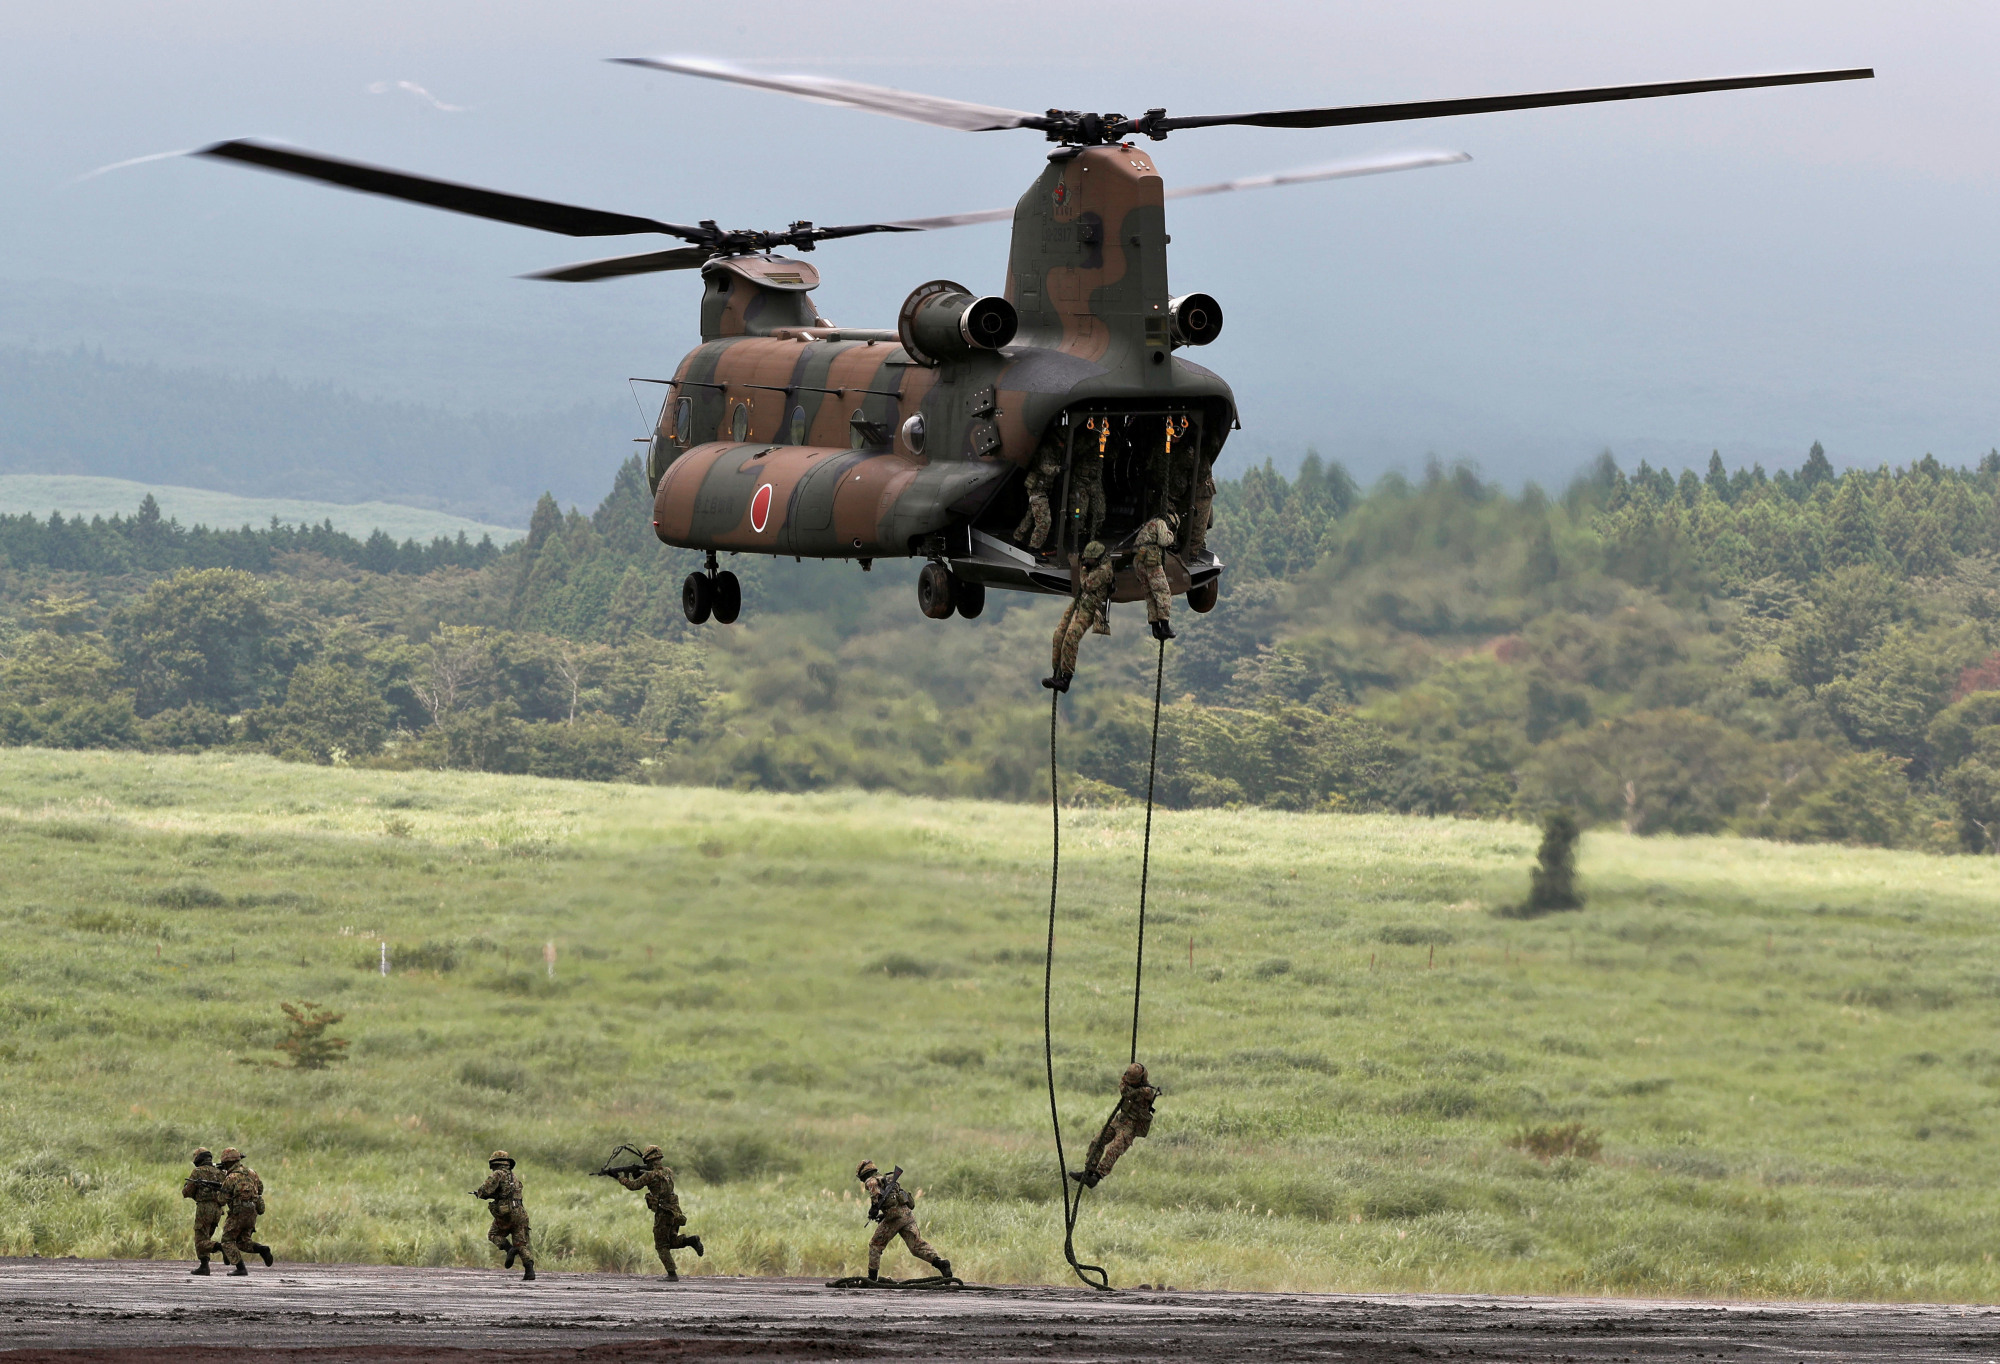 Ground Self-Defense Force soldiers rappel from a CH-47 Chinook helicopter during an annual training session near Mount Fuji at Higashifuji training field in Gotemba, Shizuoka Prefecture, on Aug. 22. | REUTERS